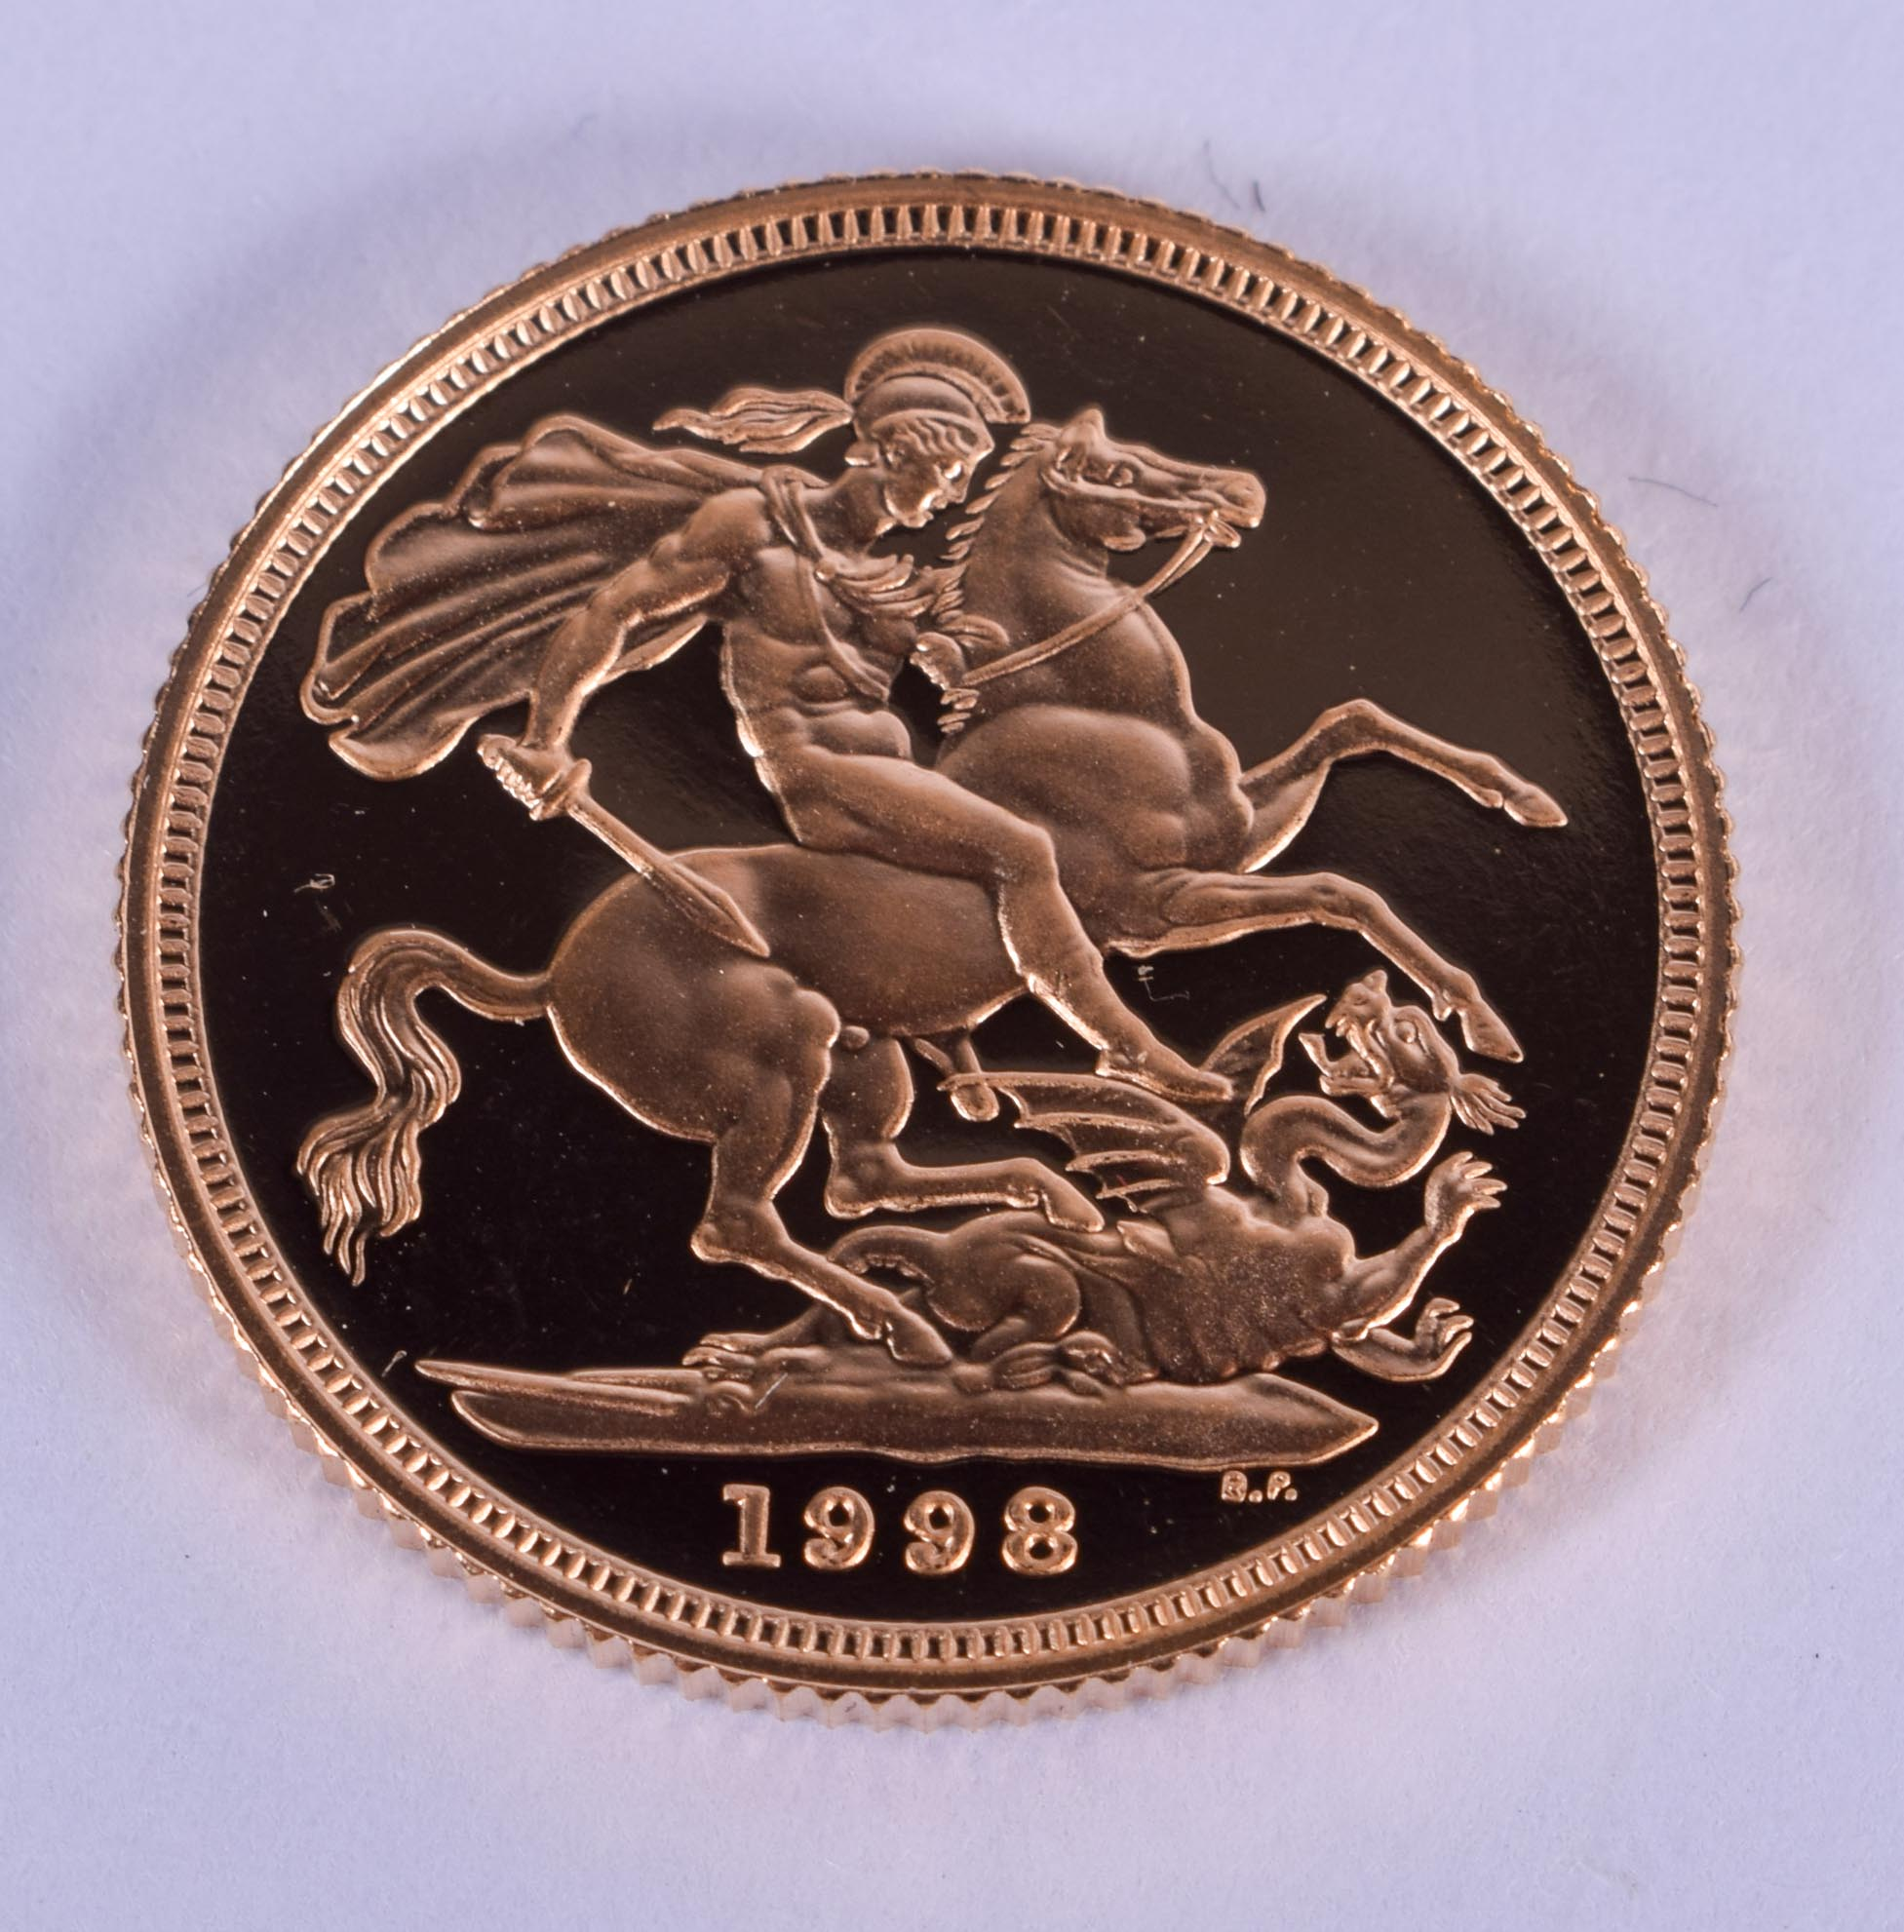 A BOXED 1998 PROOF SOVEREIGN. 2 cm diameter. - Image 3 of 3